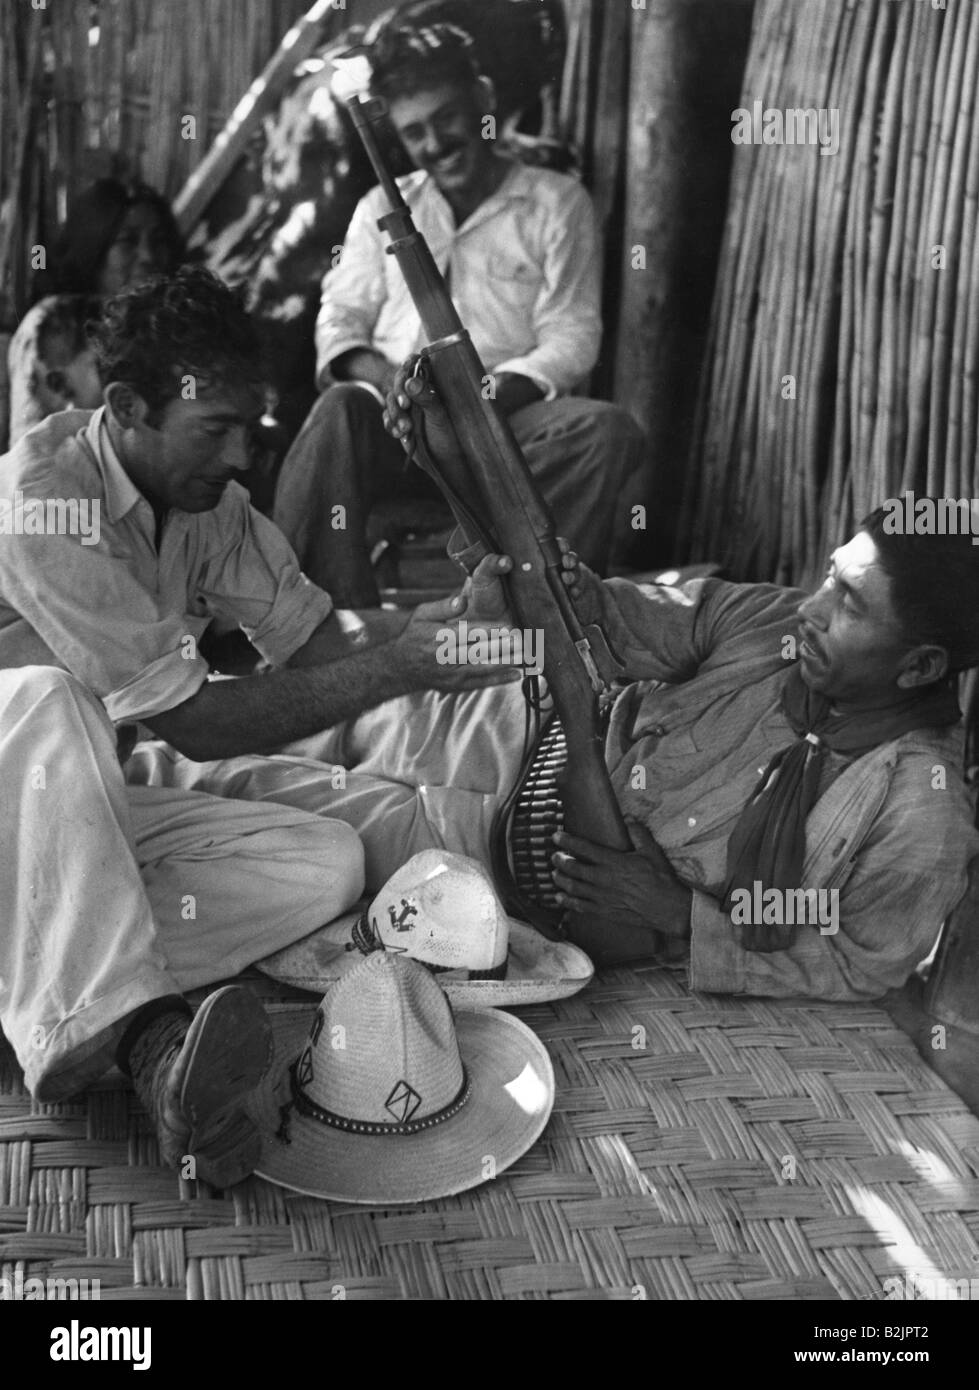 hindu single men in rifle Rifle types bolt-action rifles bolt-action rifles are loaded by manual operation of the bolt remington model 700 to eject a spent cartridge from the.